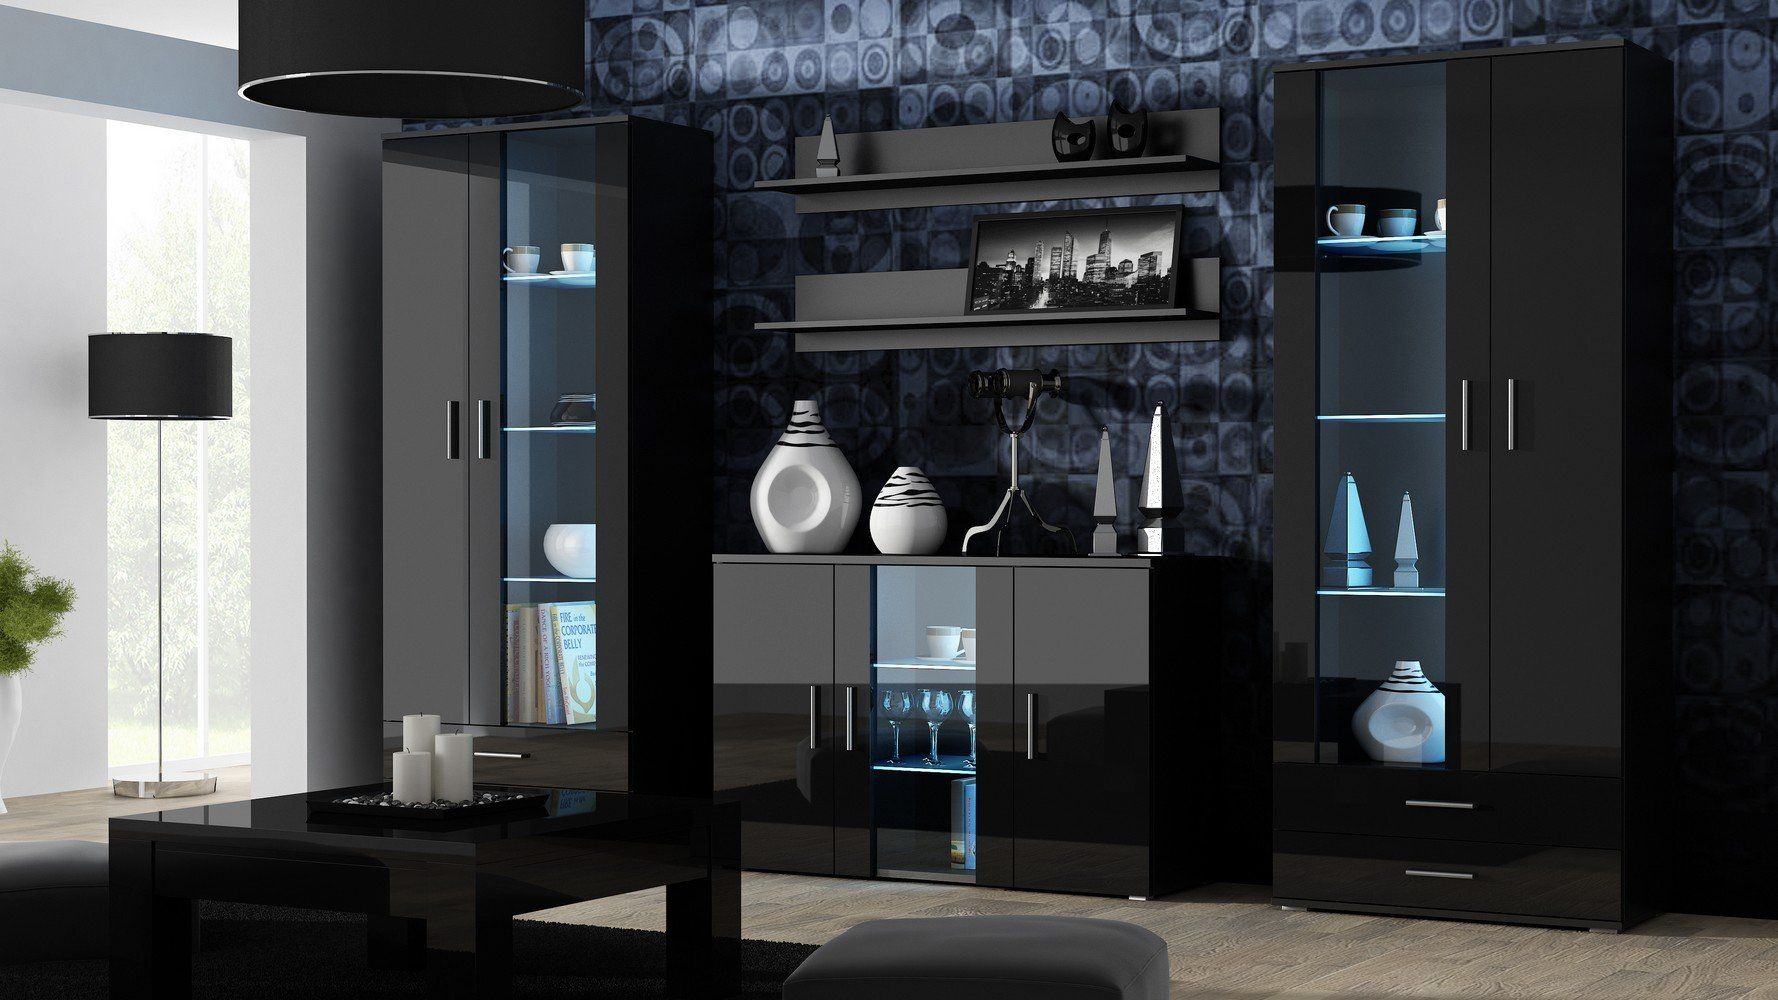 Furniture24 Wohnwand Soho Anbauwand Wohnzimmer M Bel Hochglanz Vitrine Kommode Tv Schrank Korpus Schwarz Matt Front Schwar In 2020 Wall Unit Decor Modern Wall Units